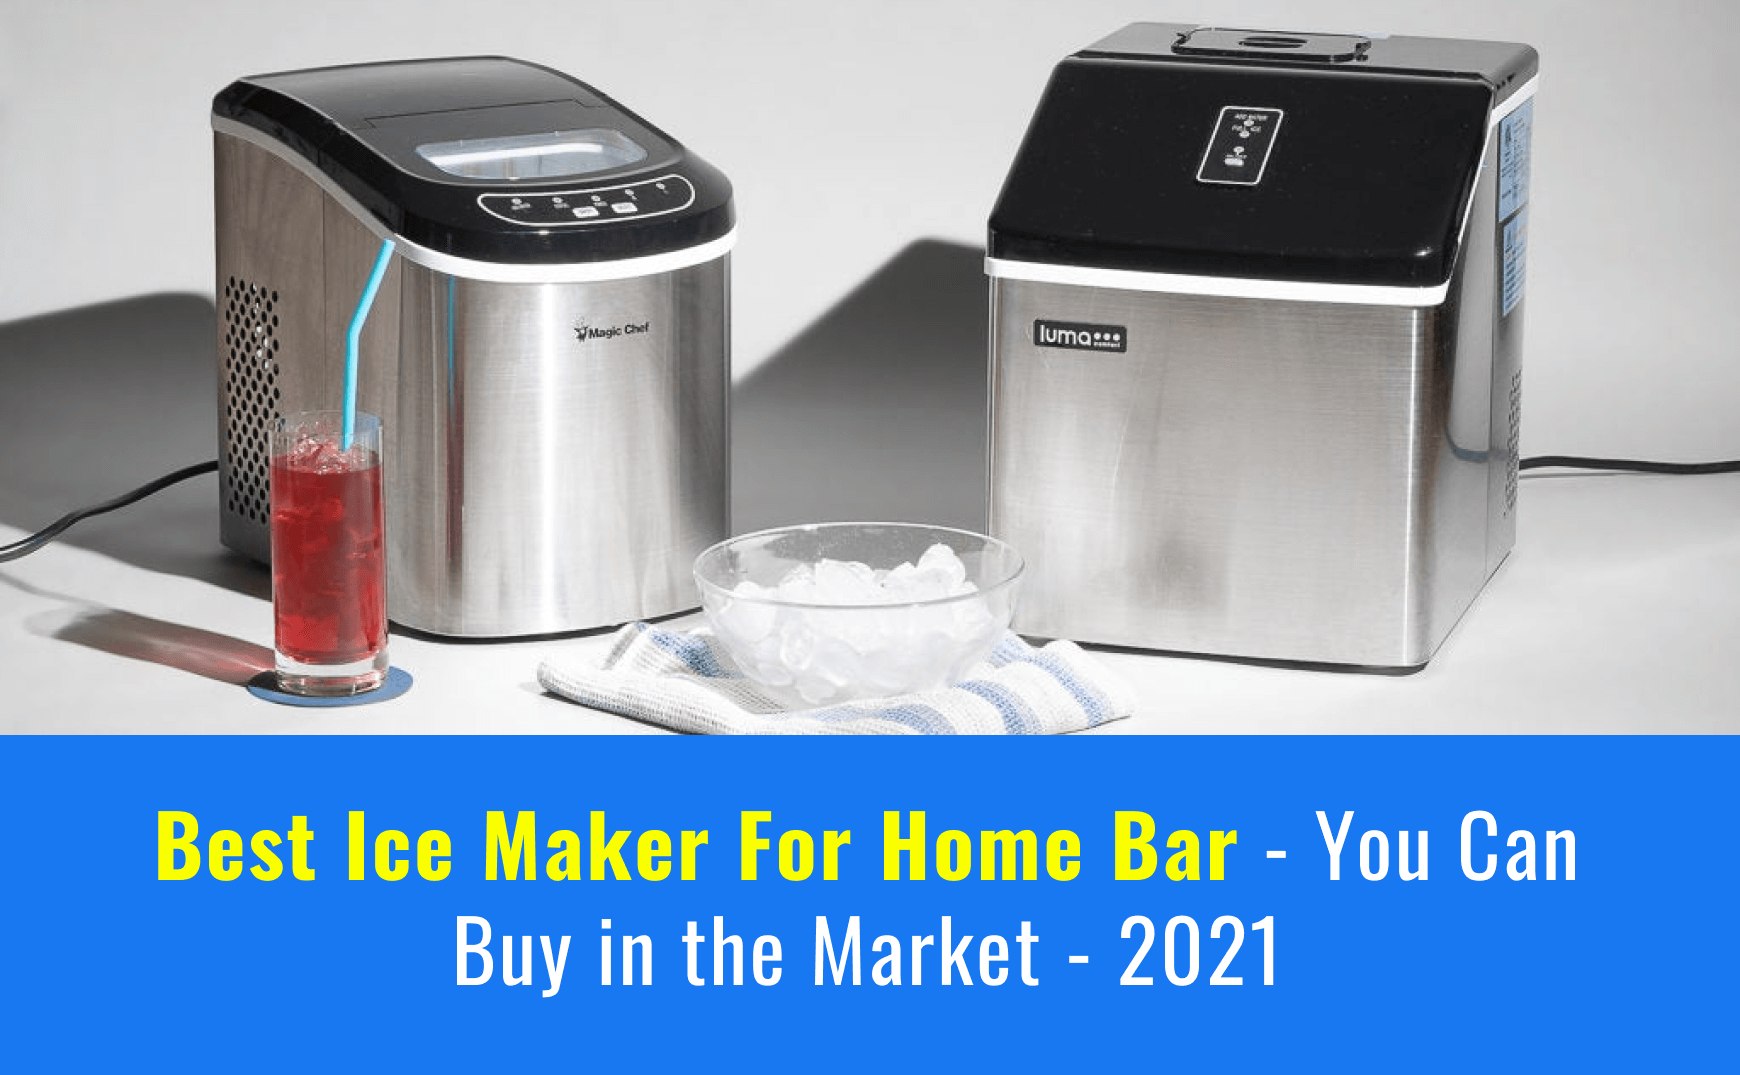 10 Best Ice Maker For Home Bar You Can Buy In The Market 2021